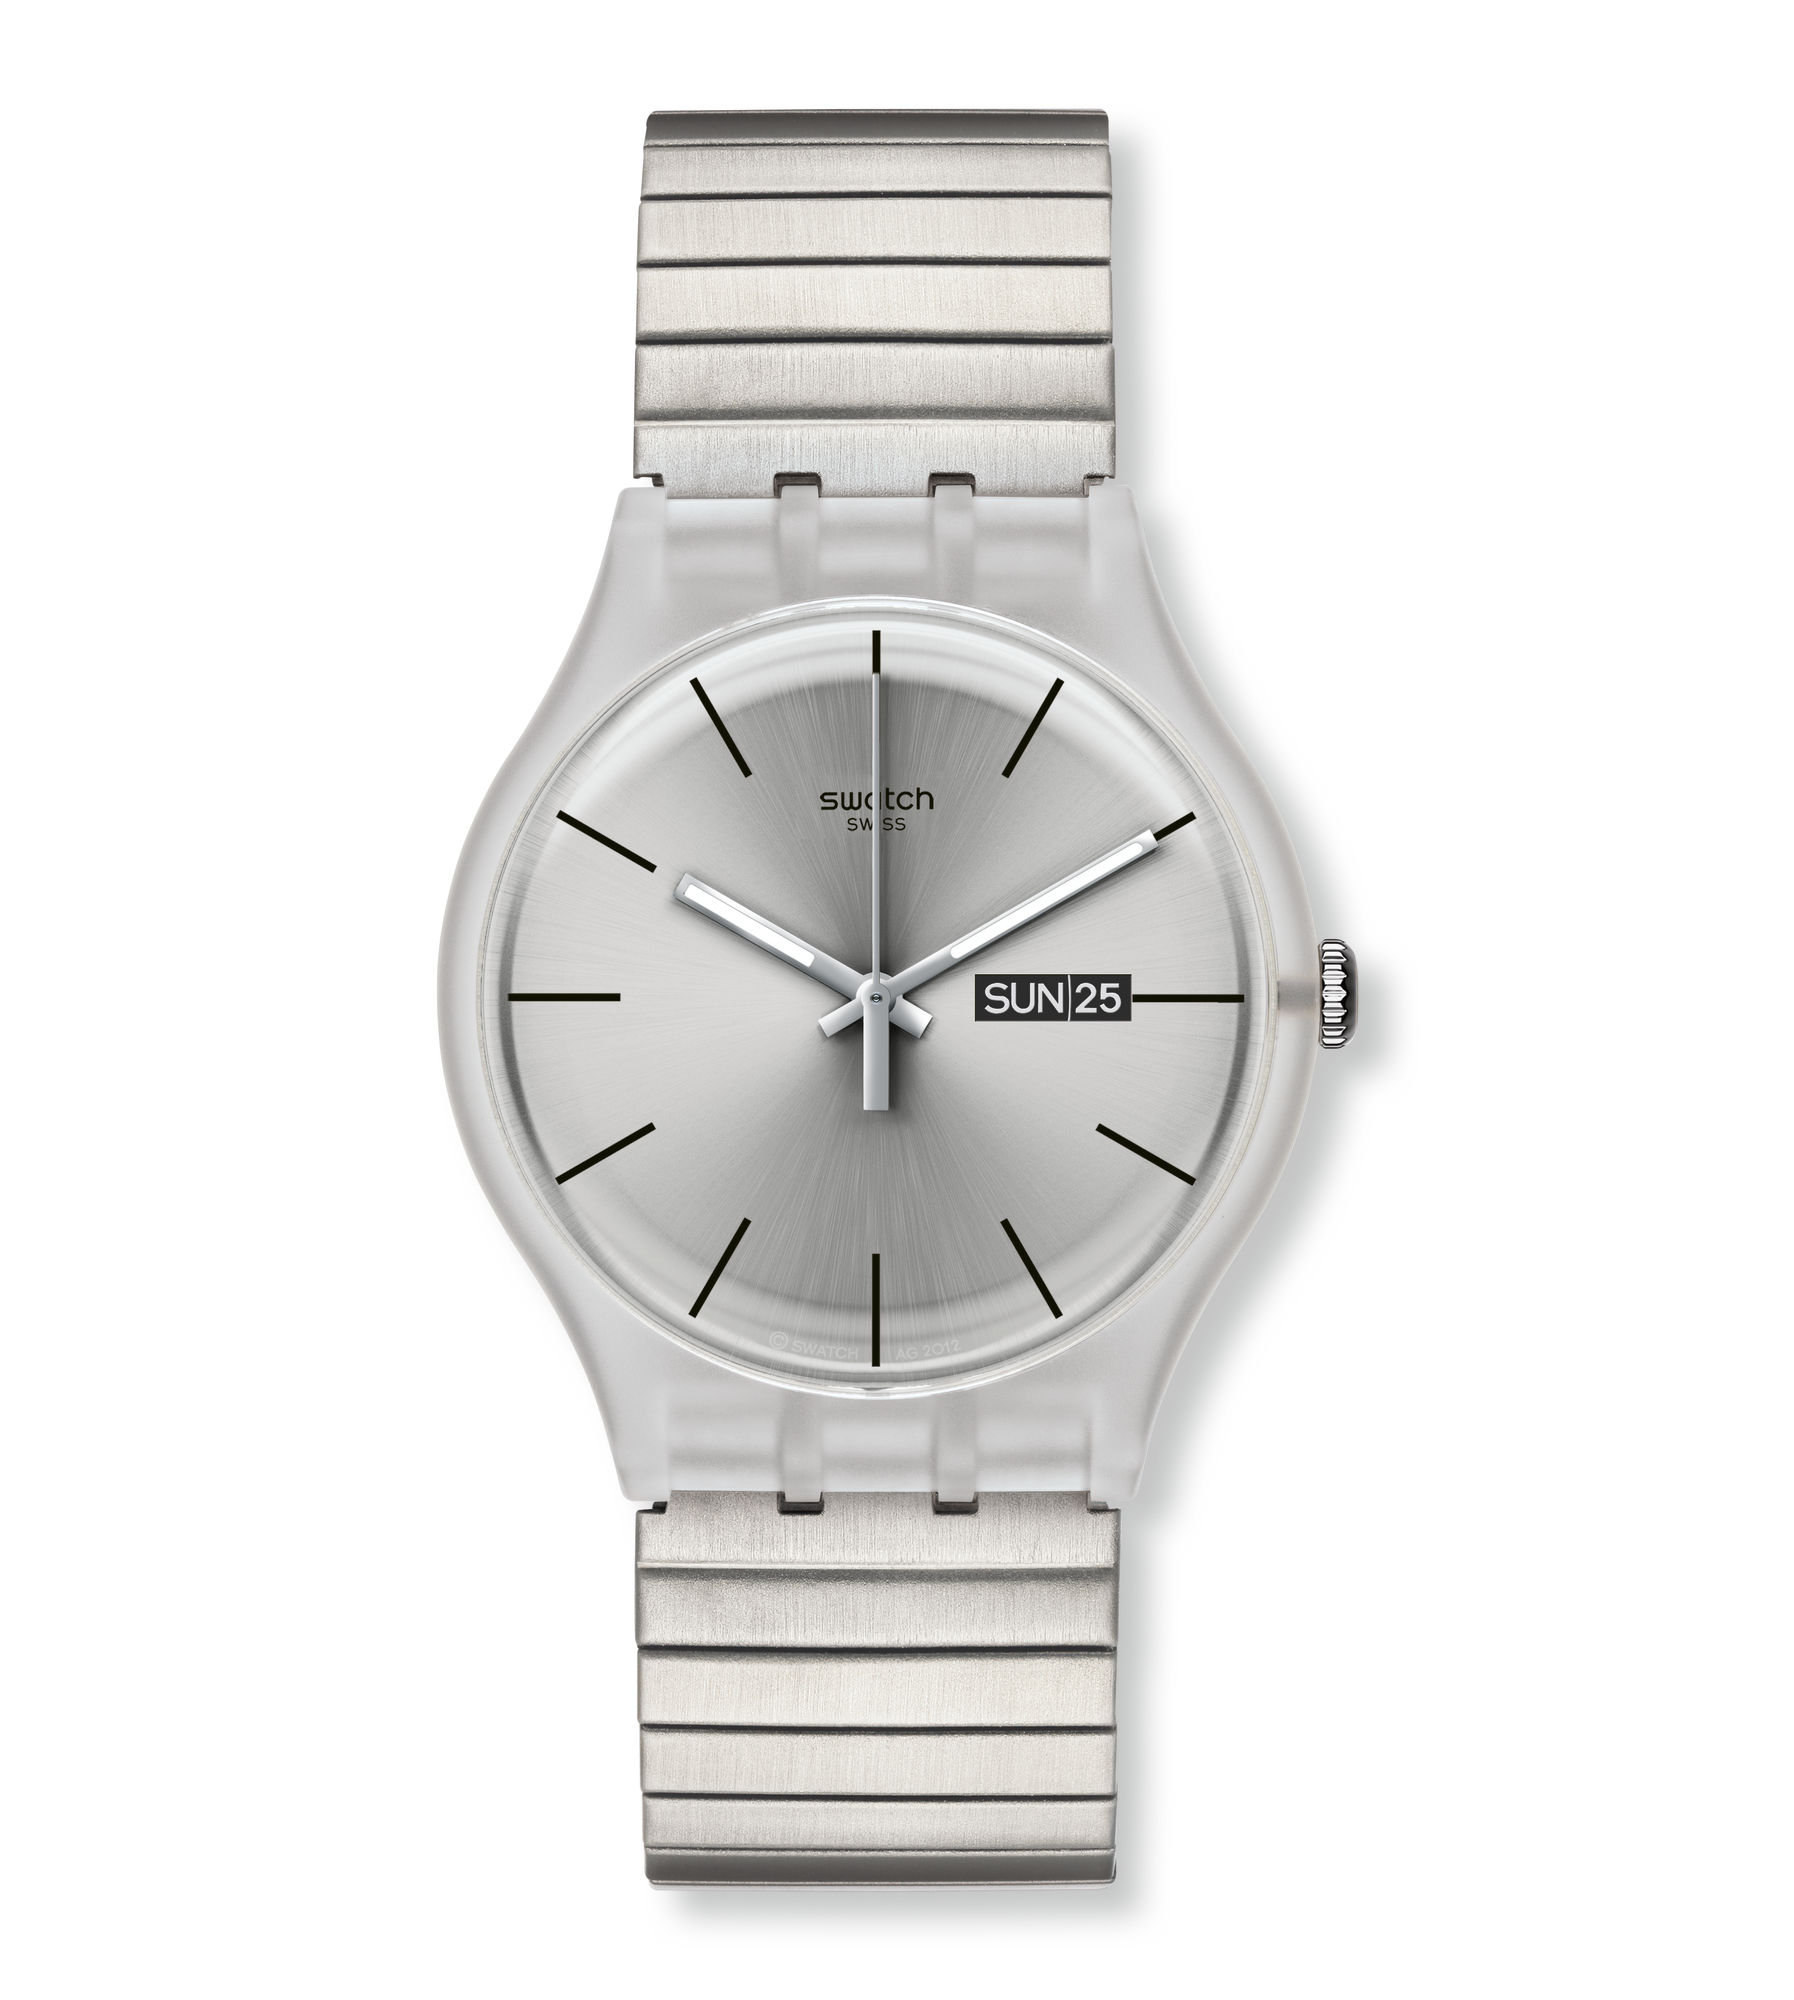 Image of Swatch Watch